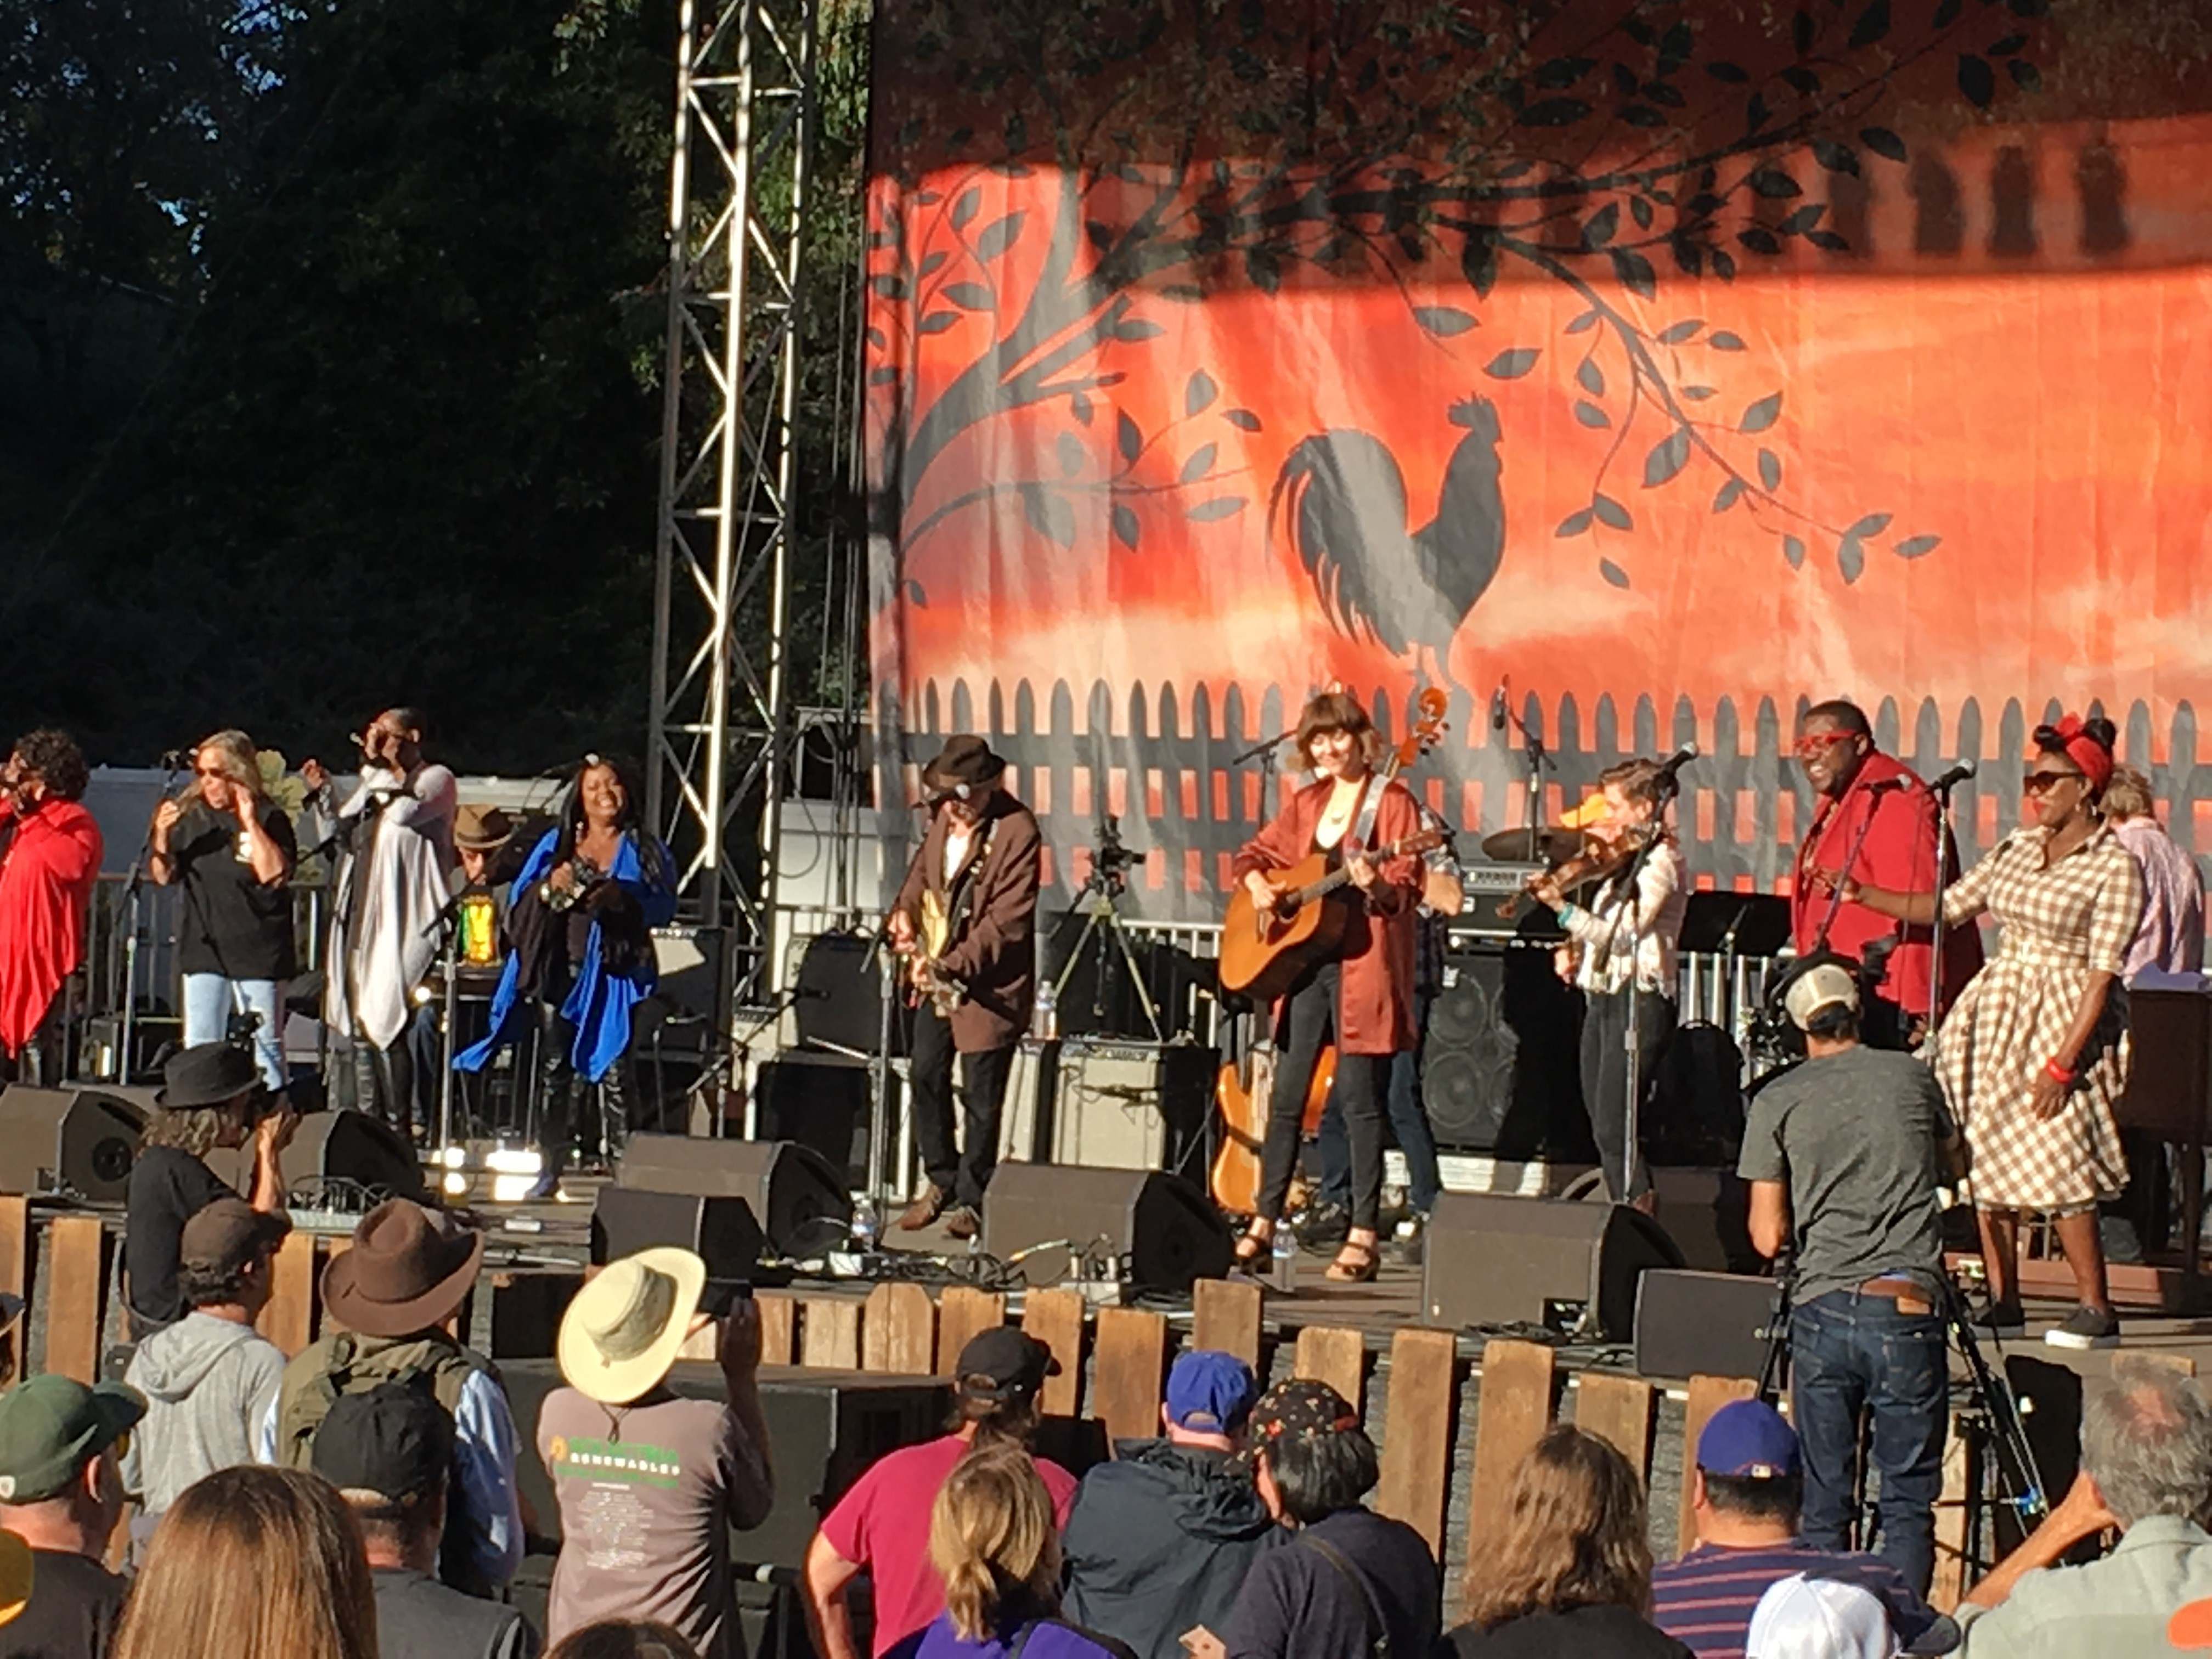 Buddy Miller's Cavalcade of Stars Featuring the McCrary Sisters, Tracy Nelson, Buddy Miller, Molly Tuttle, and The War and Treaty.